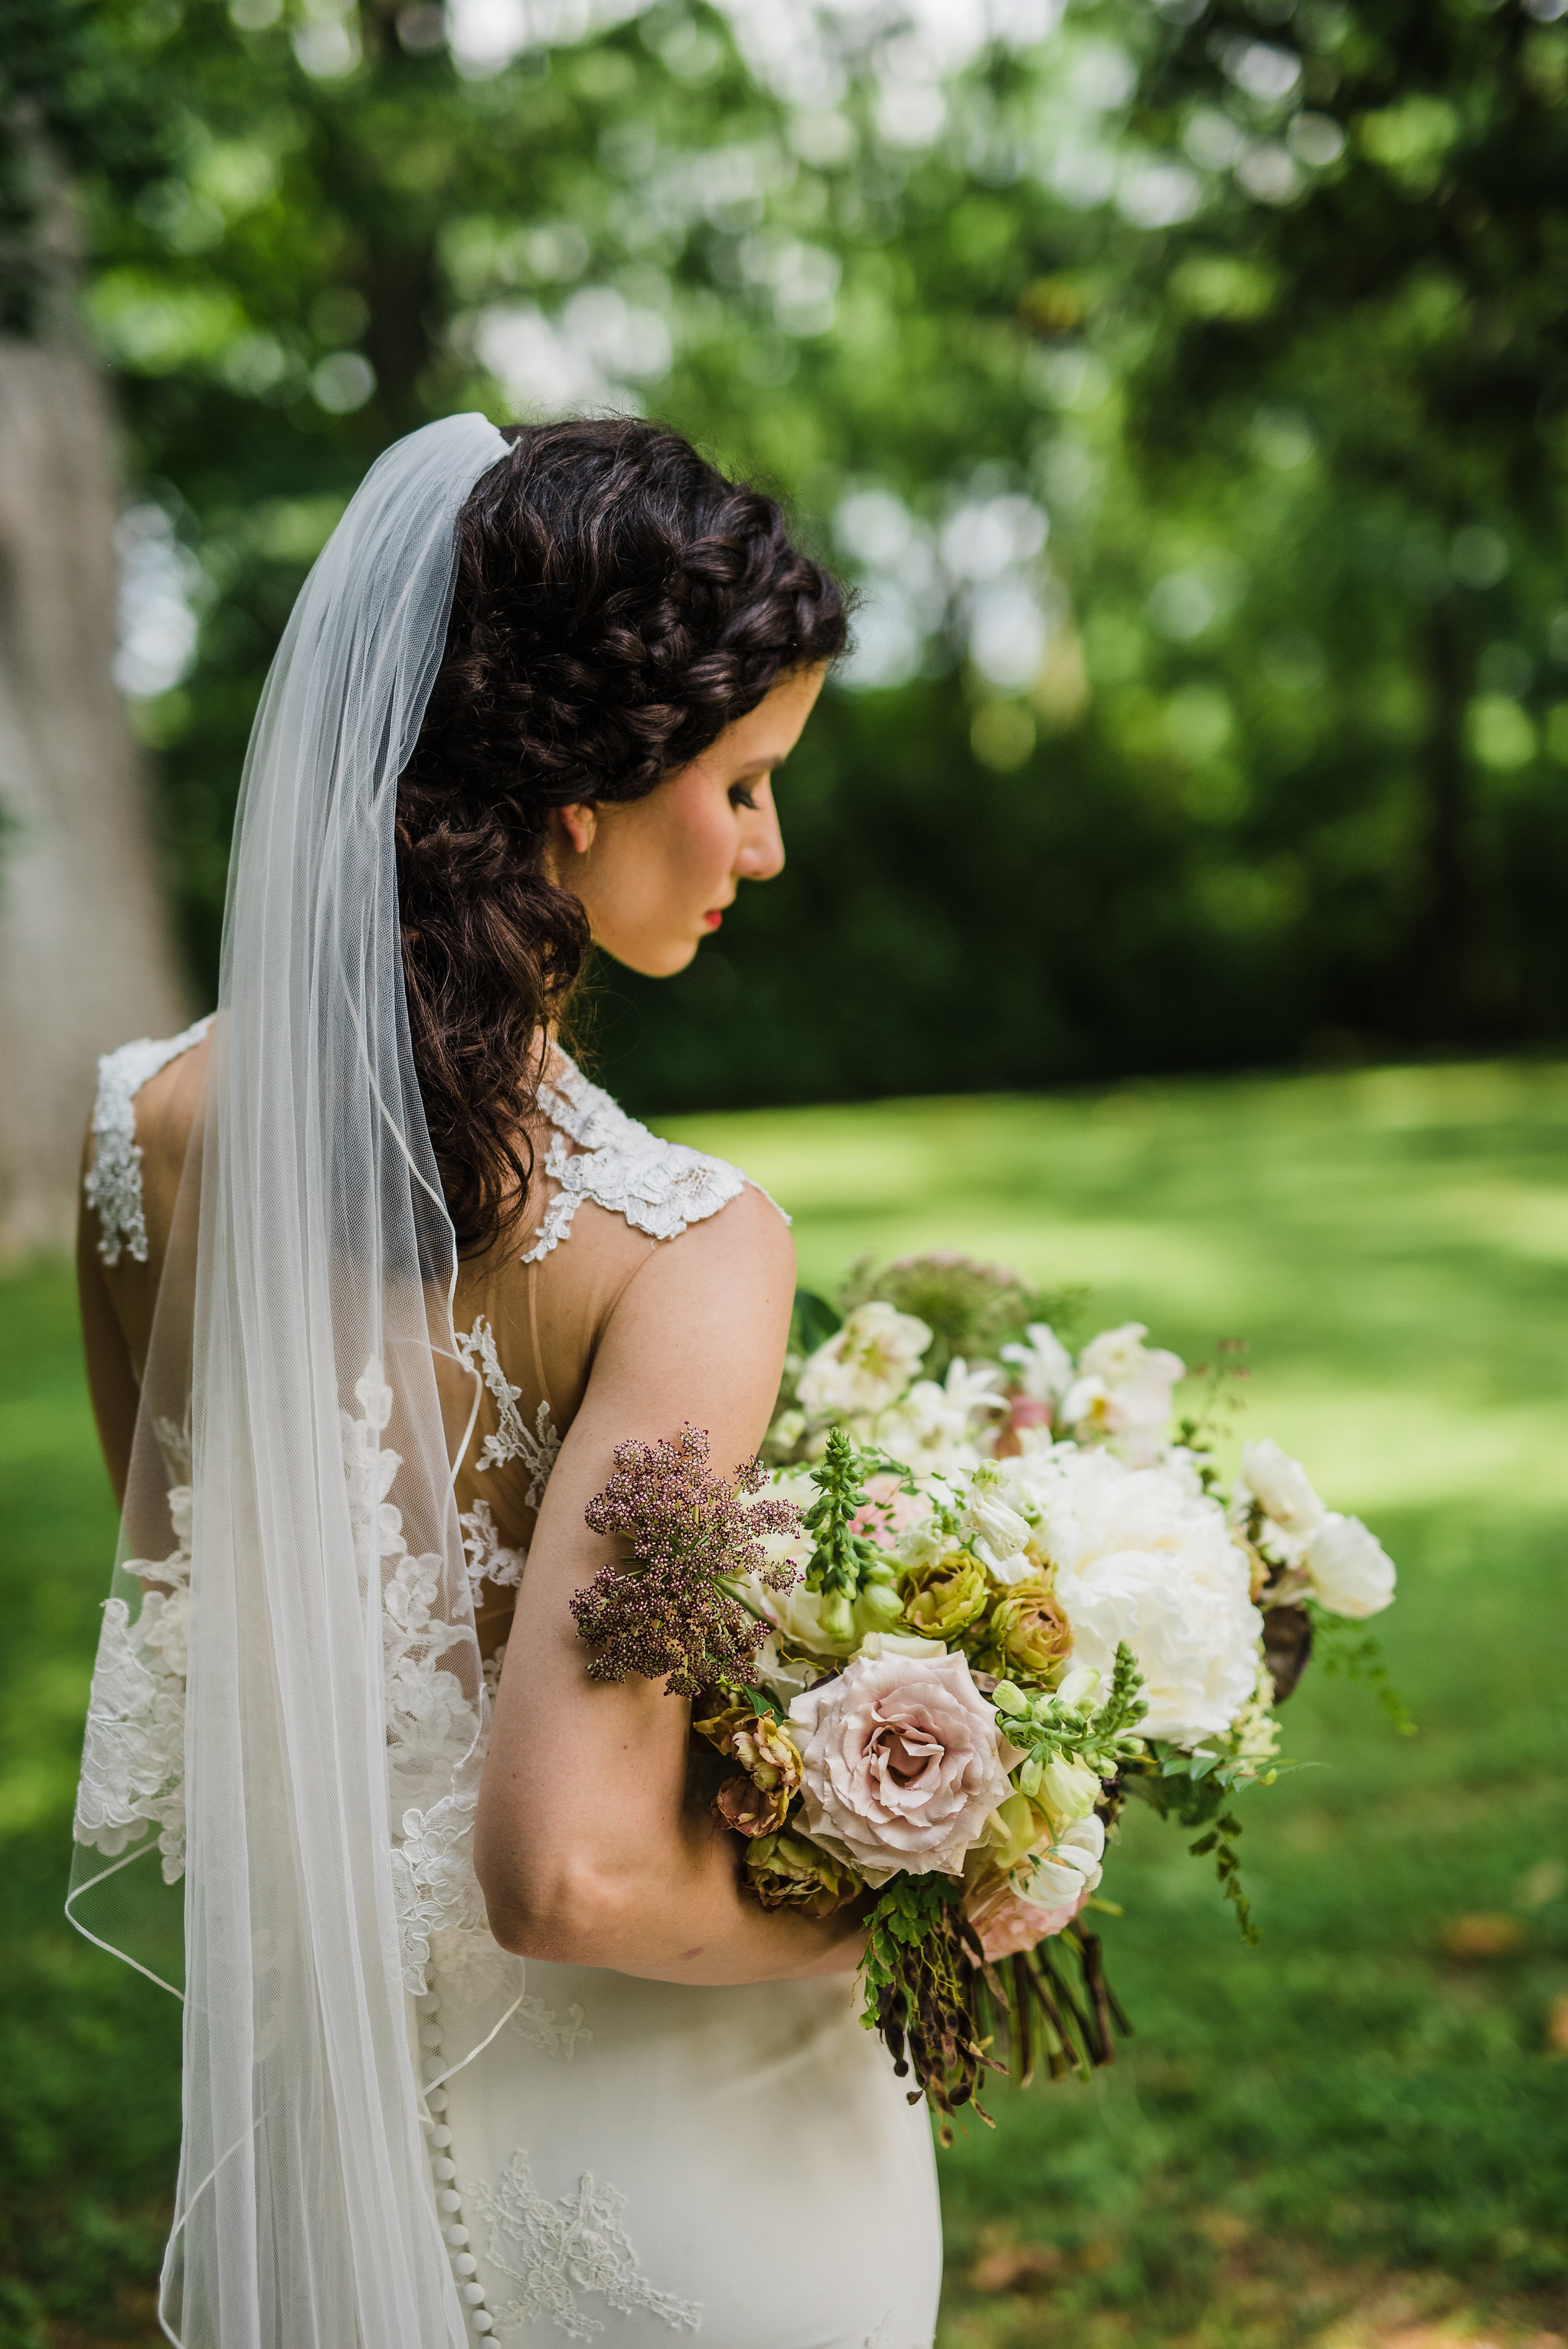 Organic, natural bridal bouquet with peonies, laceflower, greenery and neutral colors // Nashville Wedding Floral Design